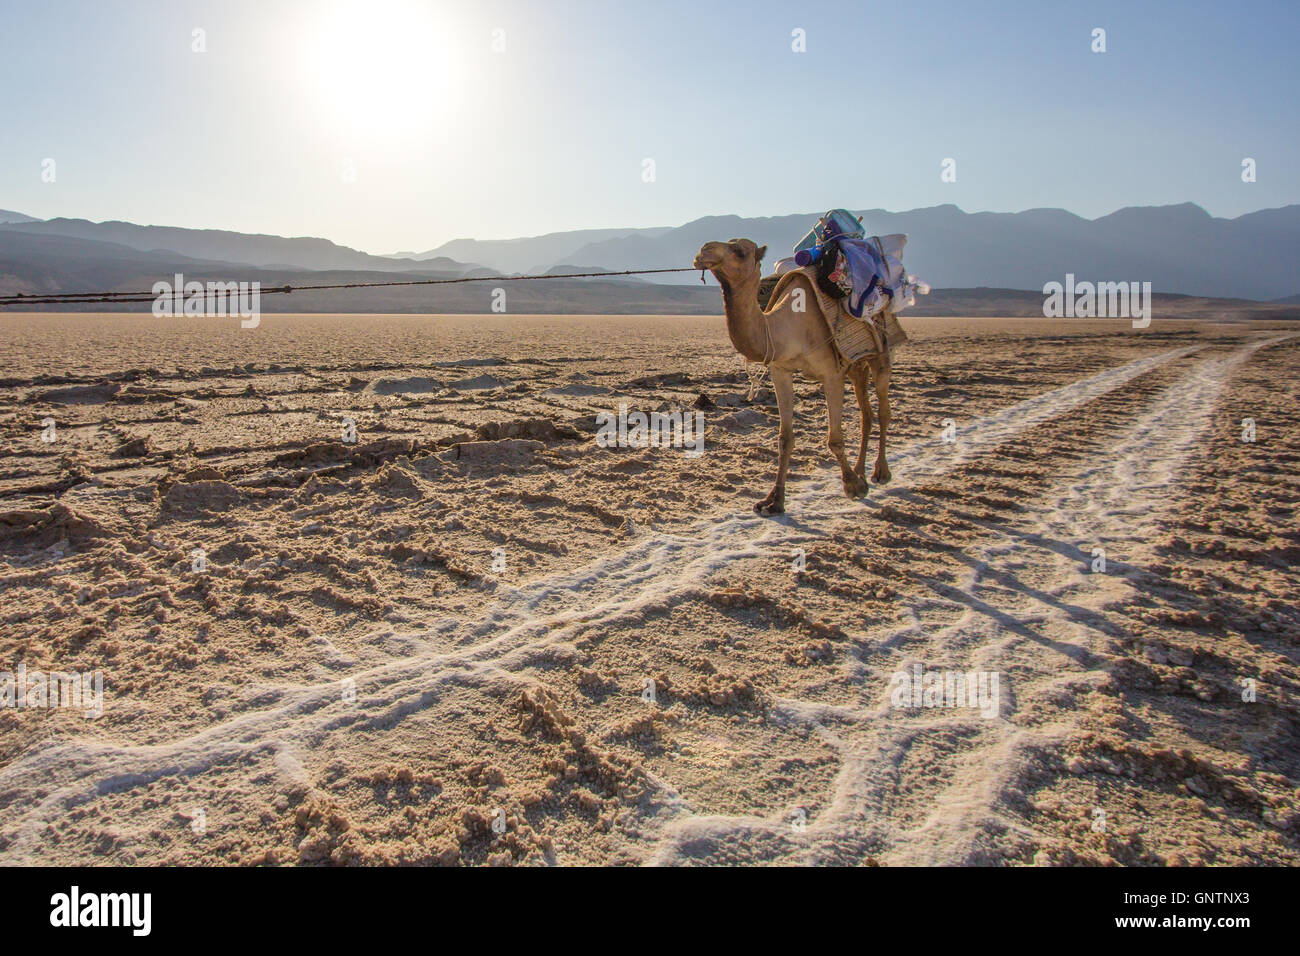 Camel caravan crossing salt flats in Djibouti. - Stock Image